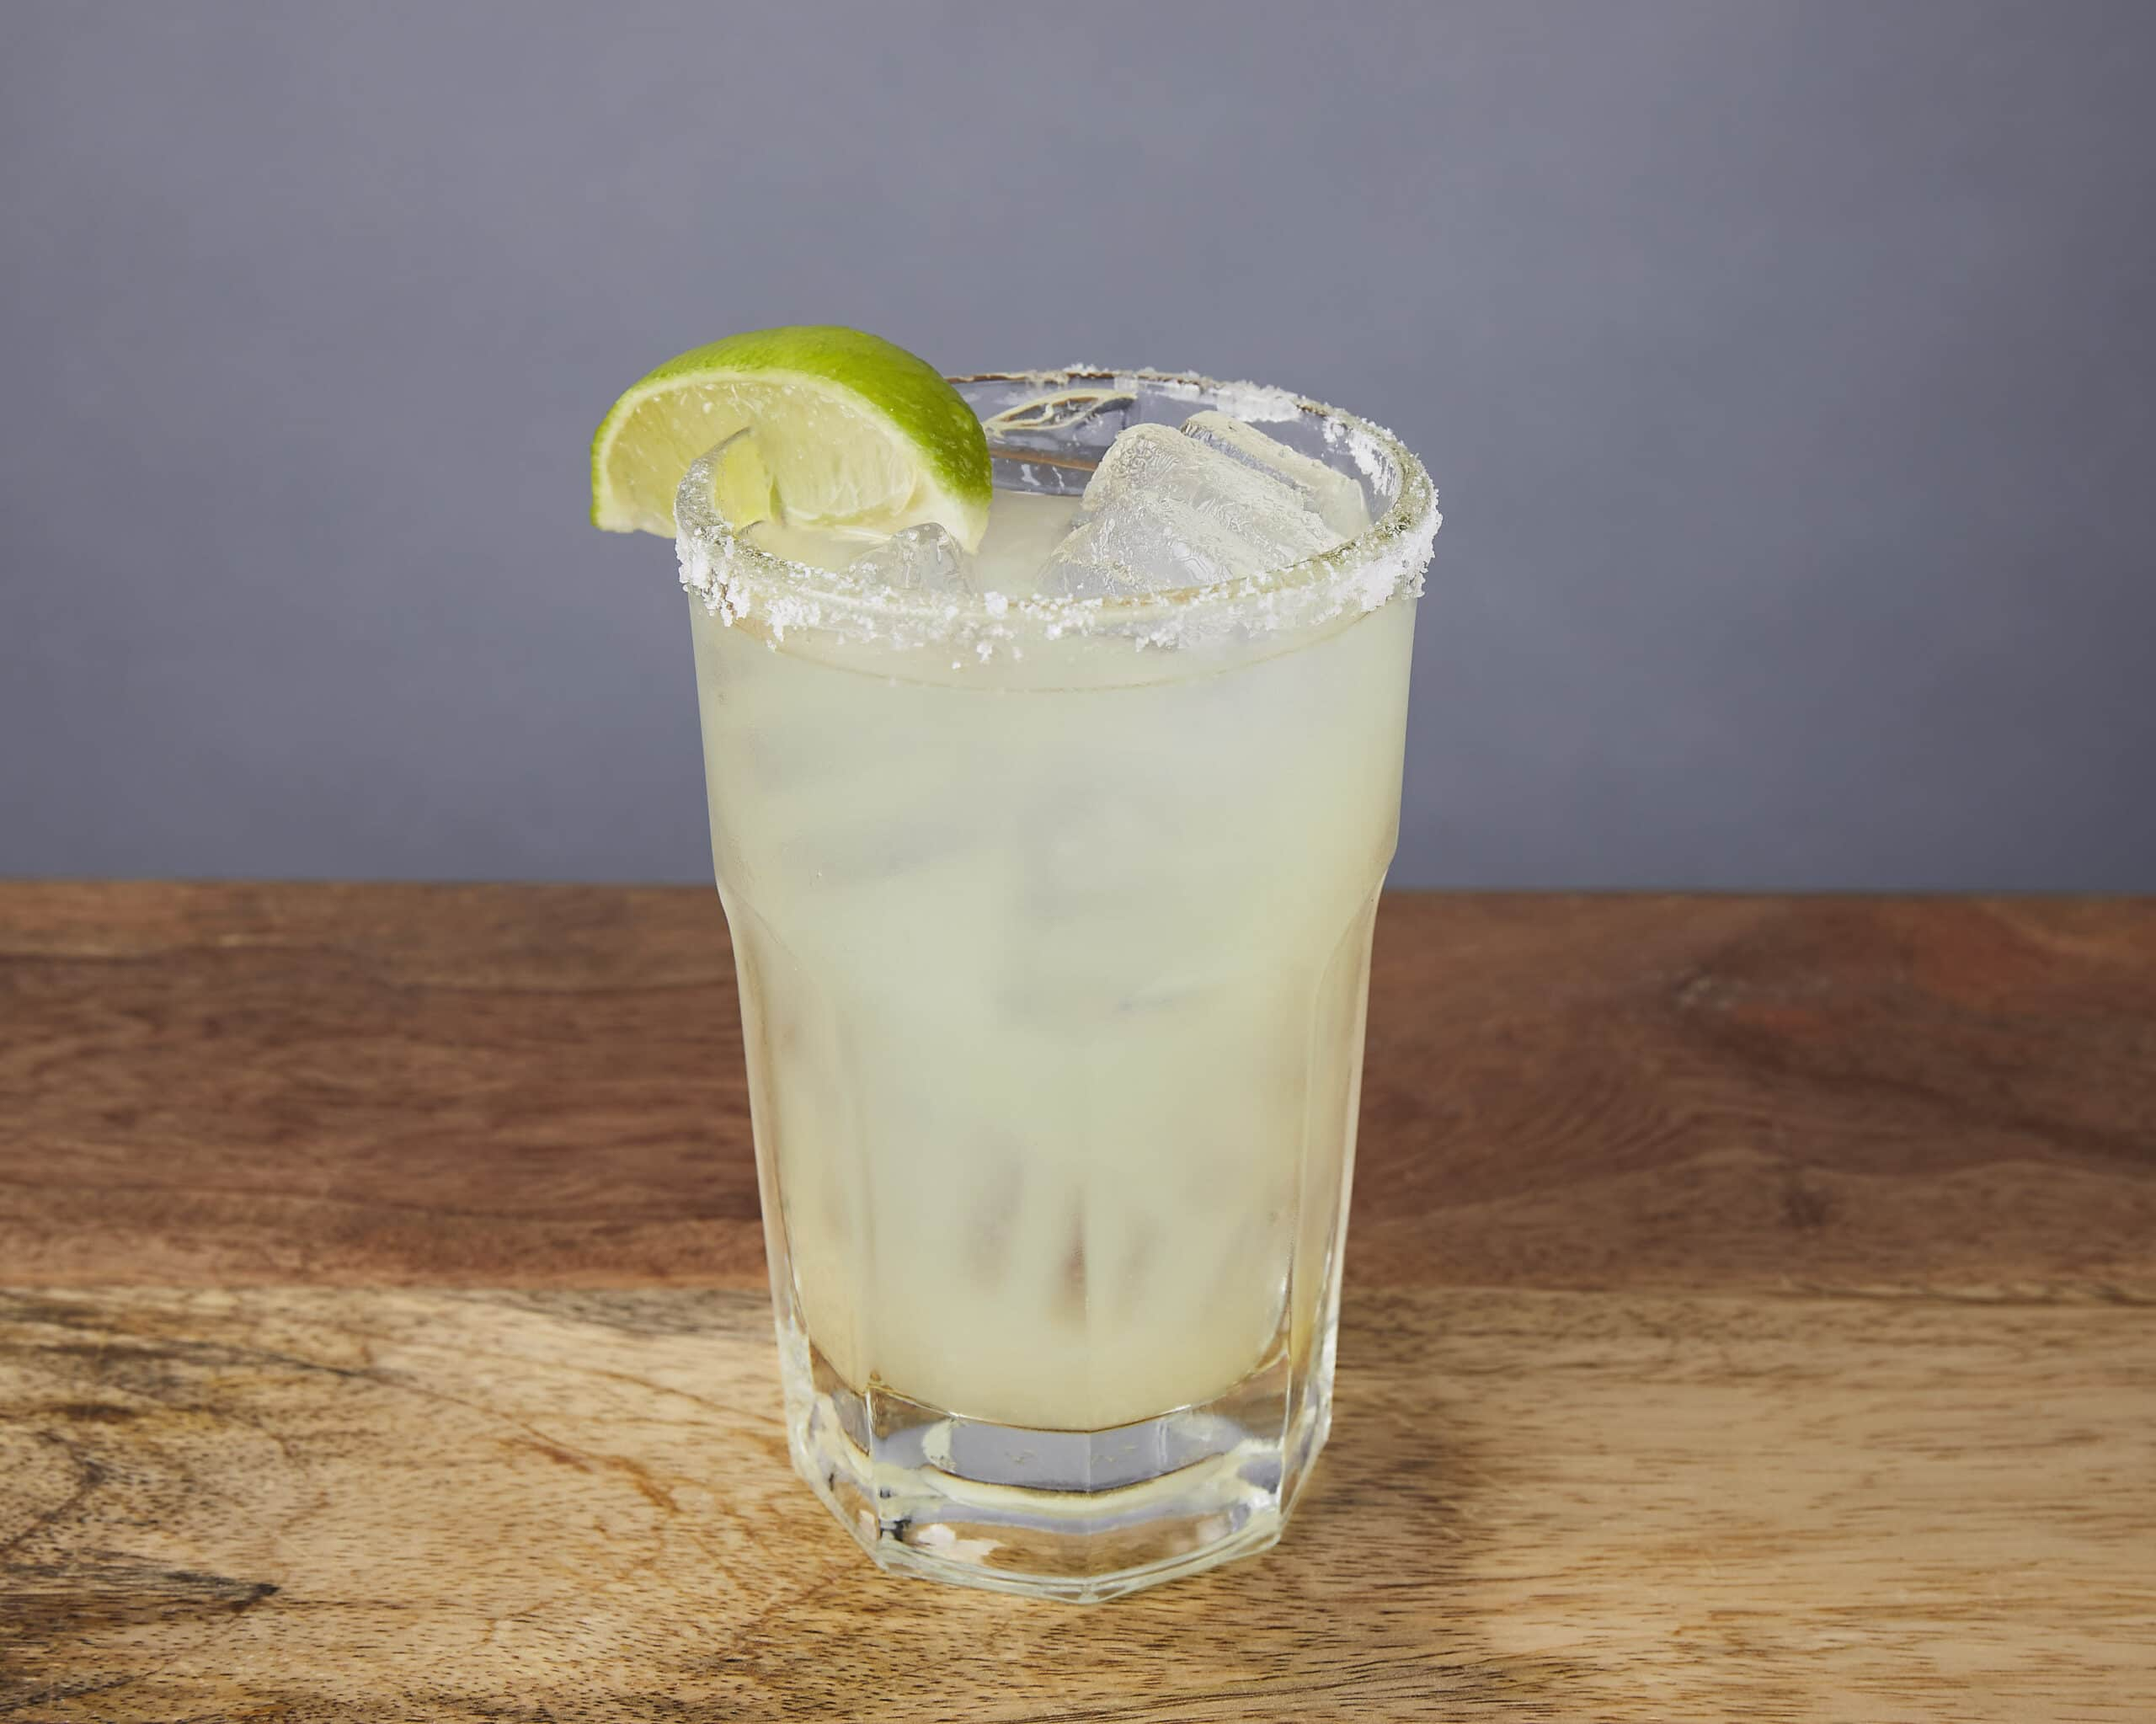 Image of a house margarita